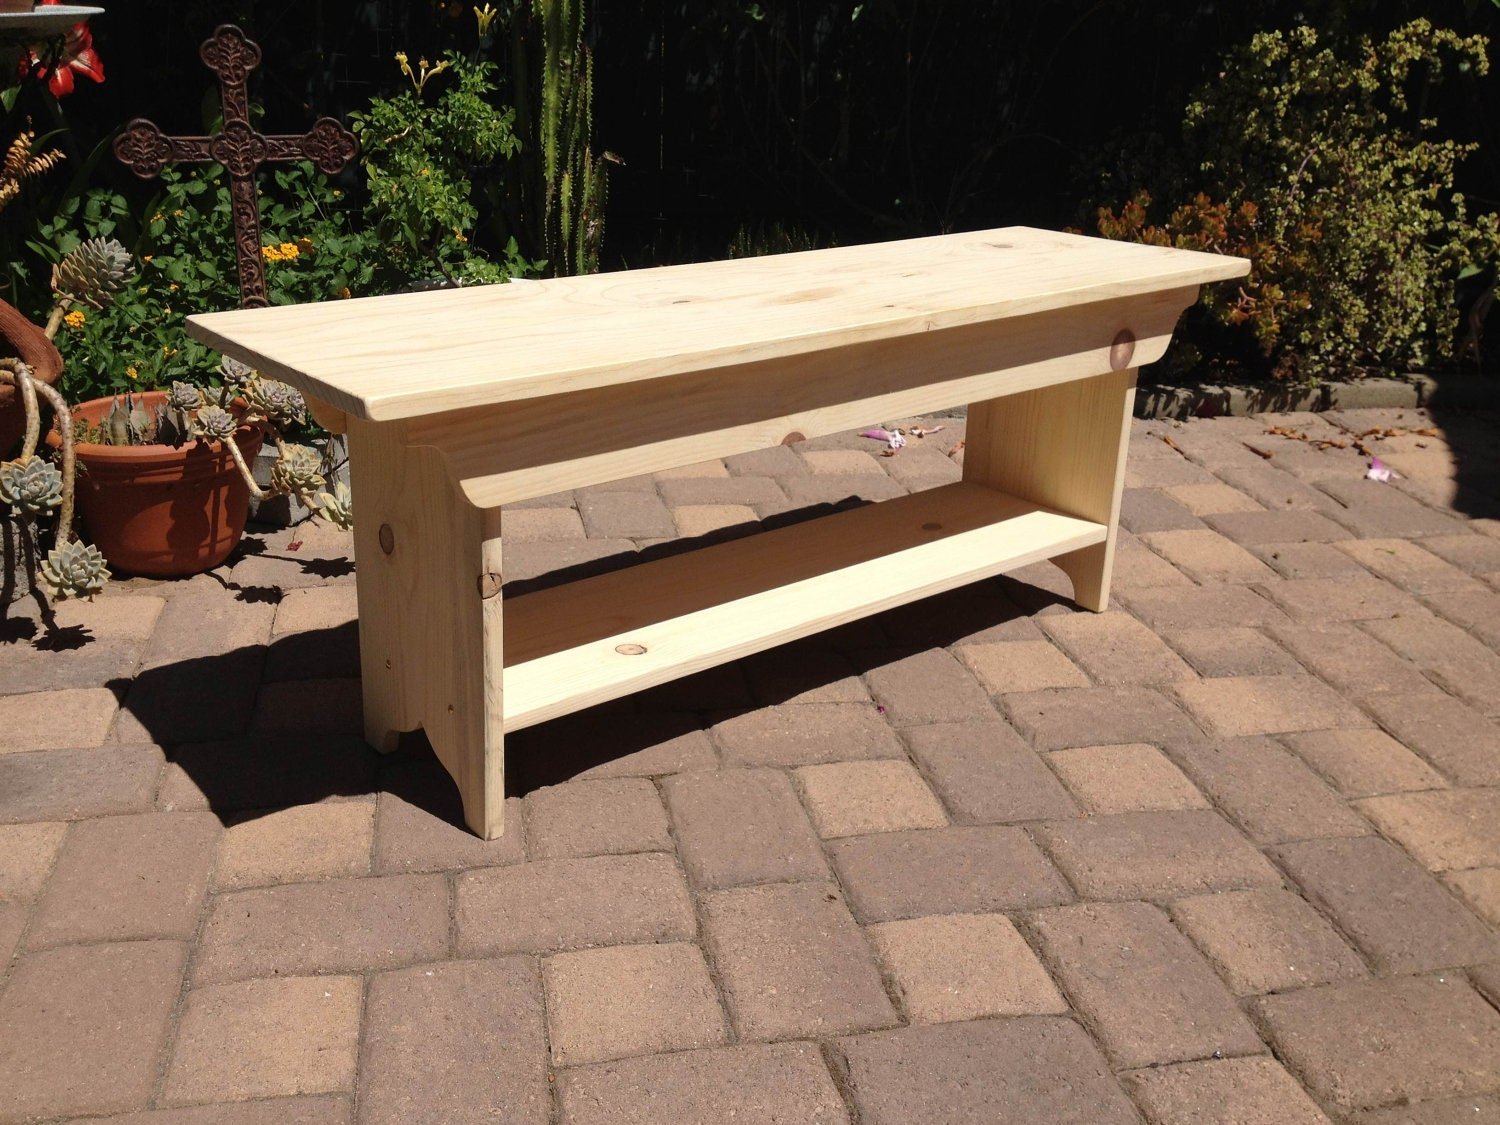 Unfinished 4 Foot Wooden Bench With Shelf By Squarenailfurniture